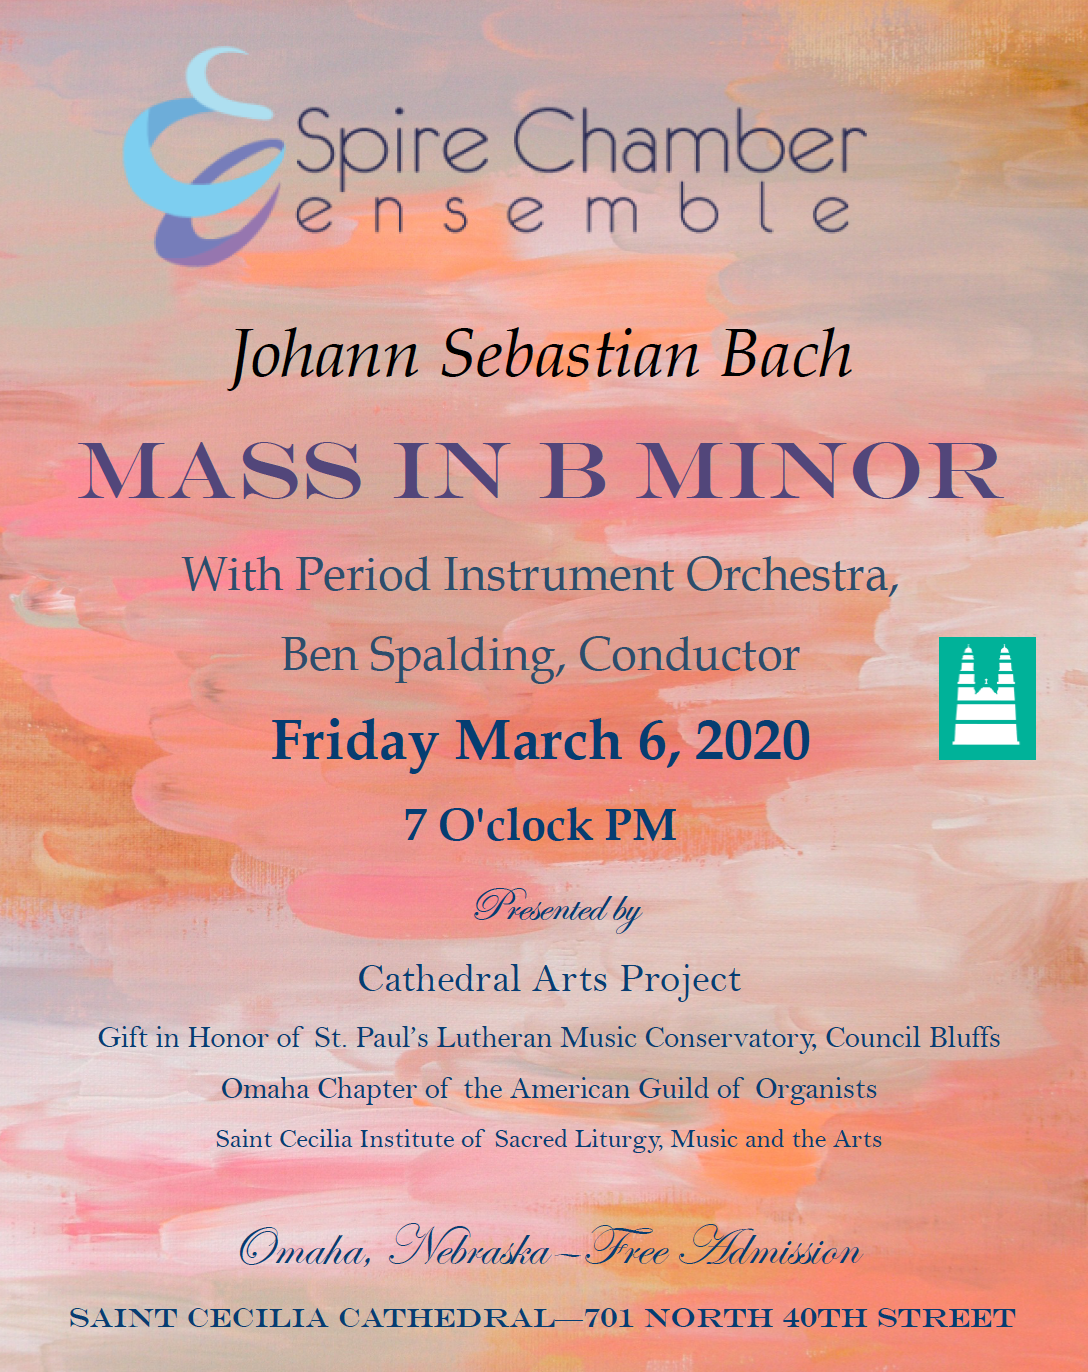 SPIRE TO PERFORM BACH MASS IN B MINOR